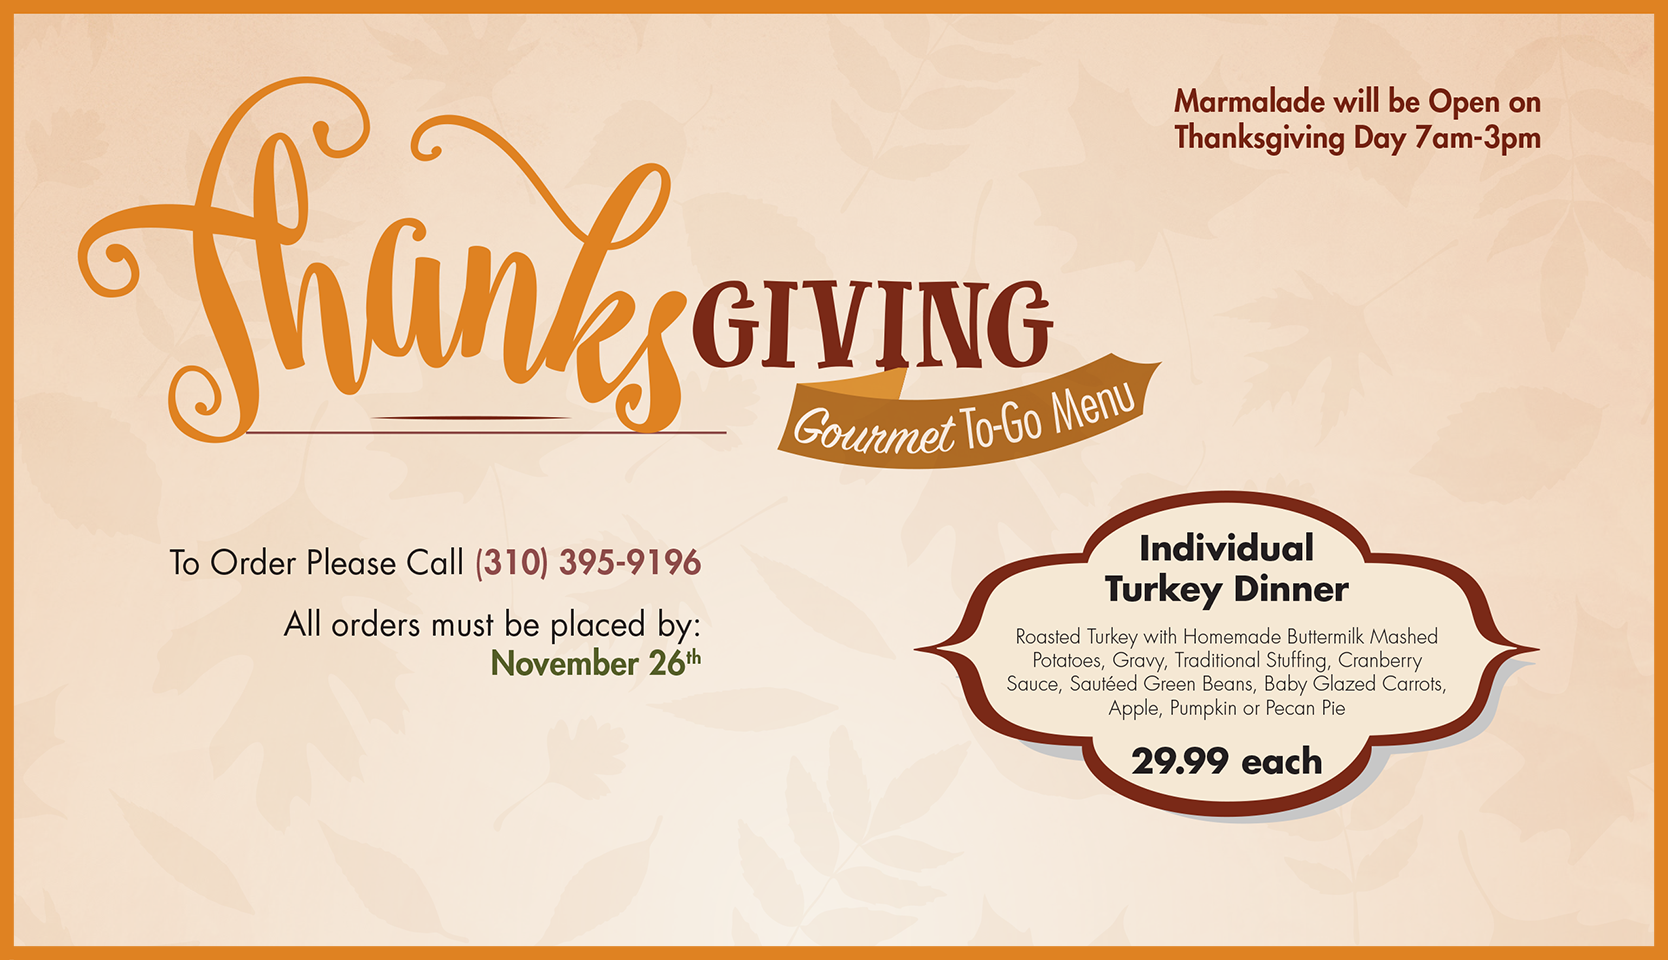 Thanksgiving Gourmet To-Go Menu To Order Please Call (310) 395-9196. All orders must be placed by: November 26th